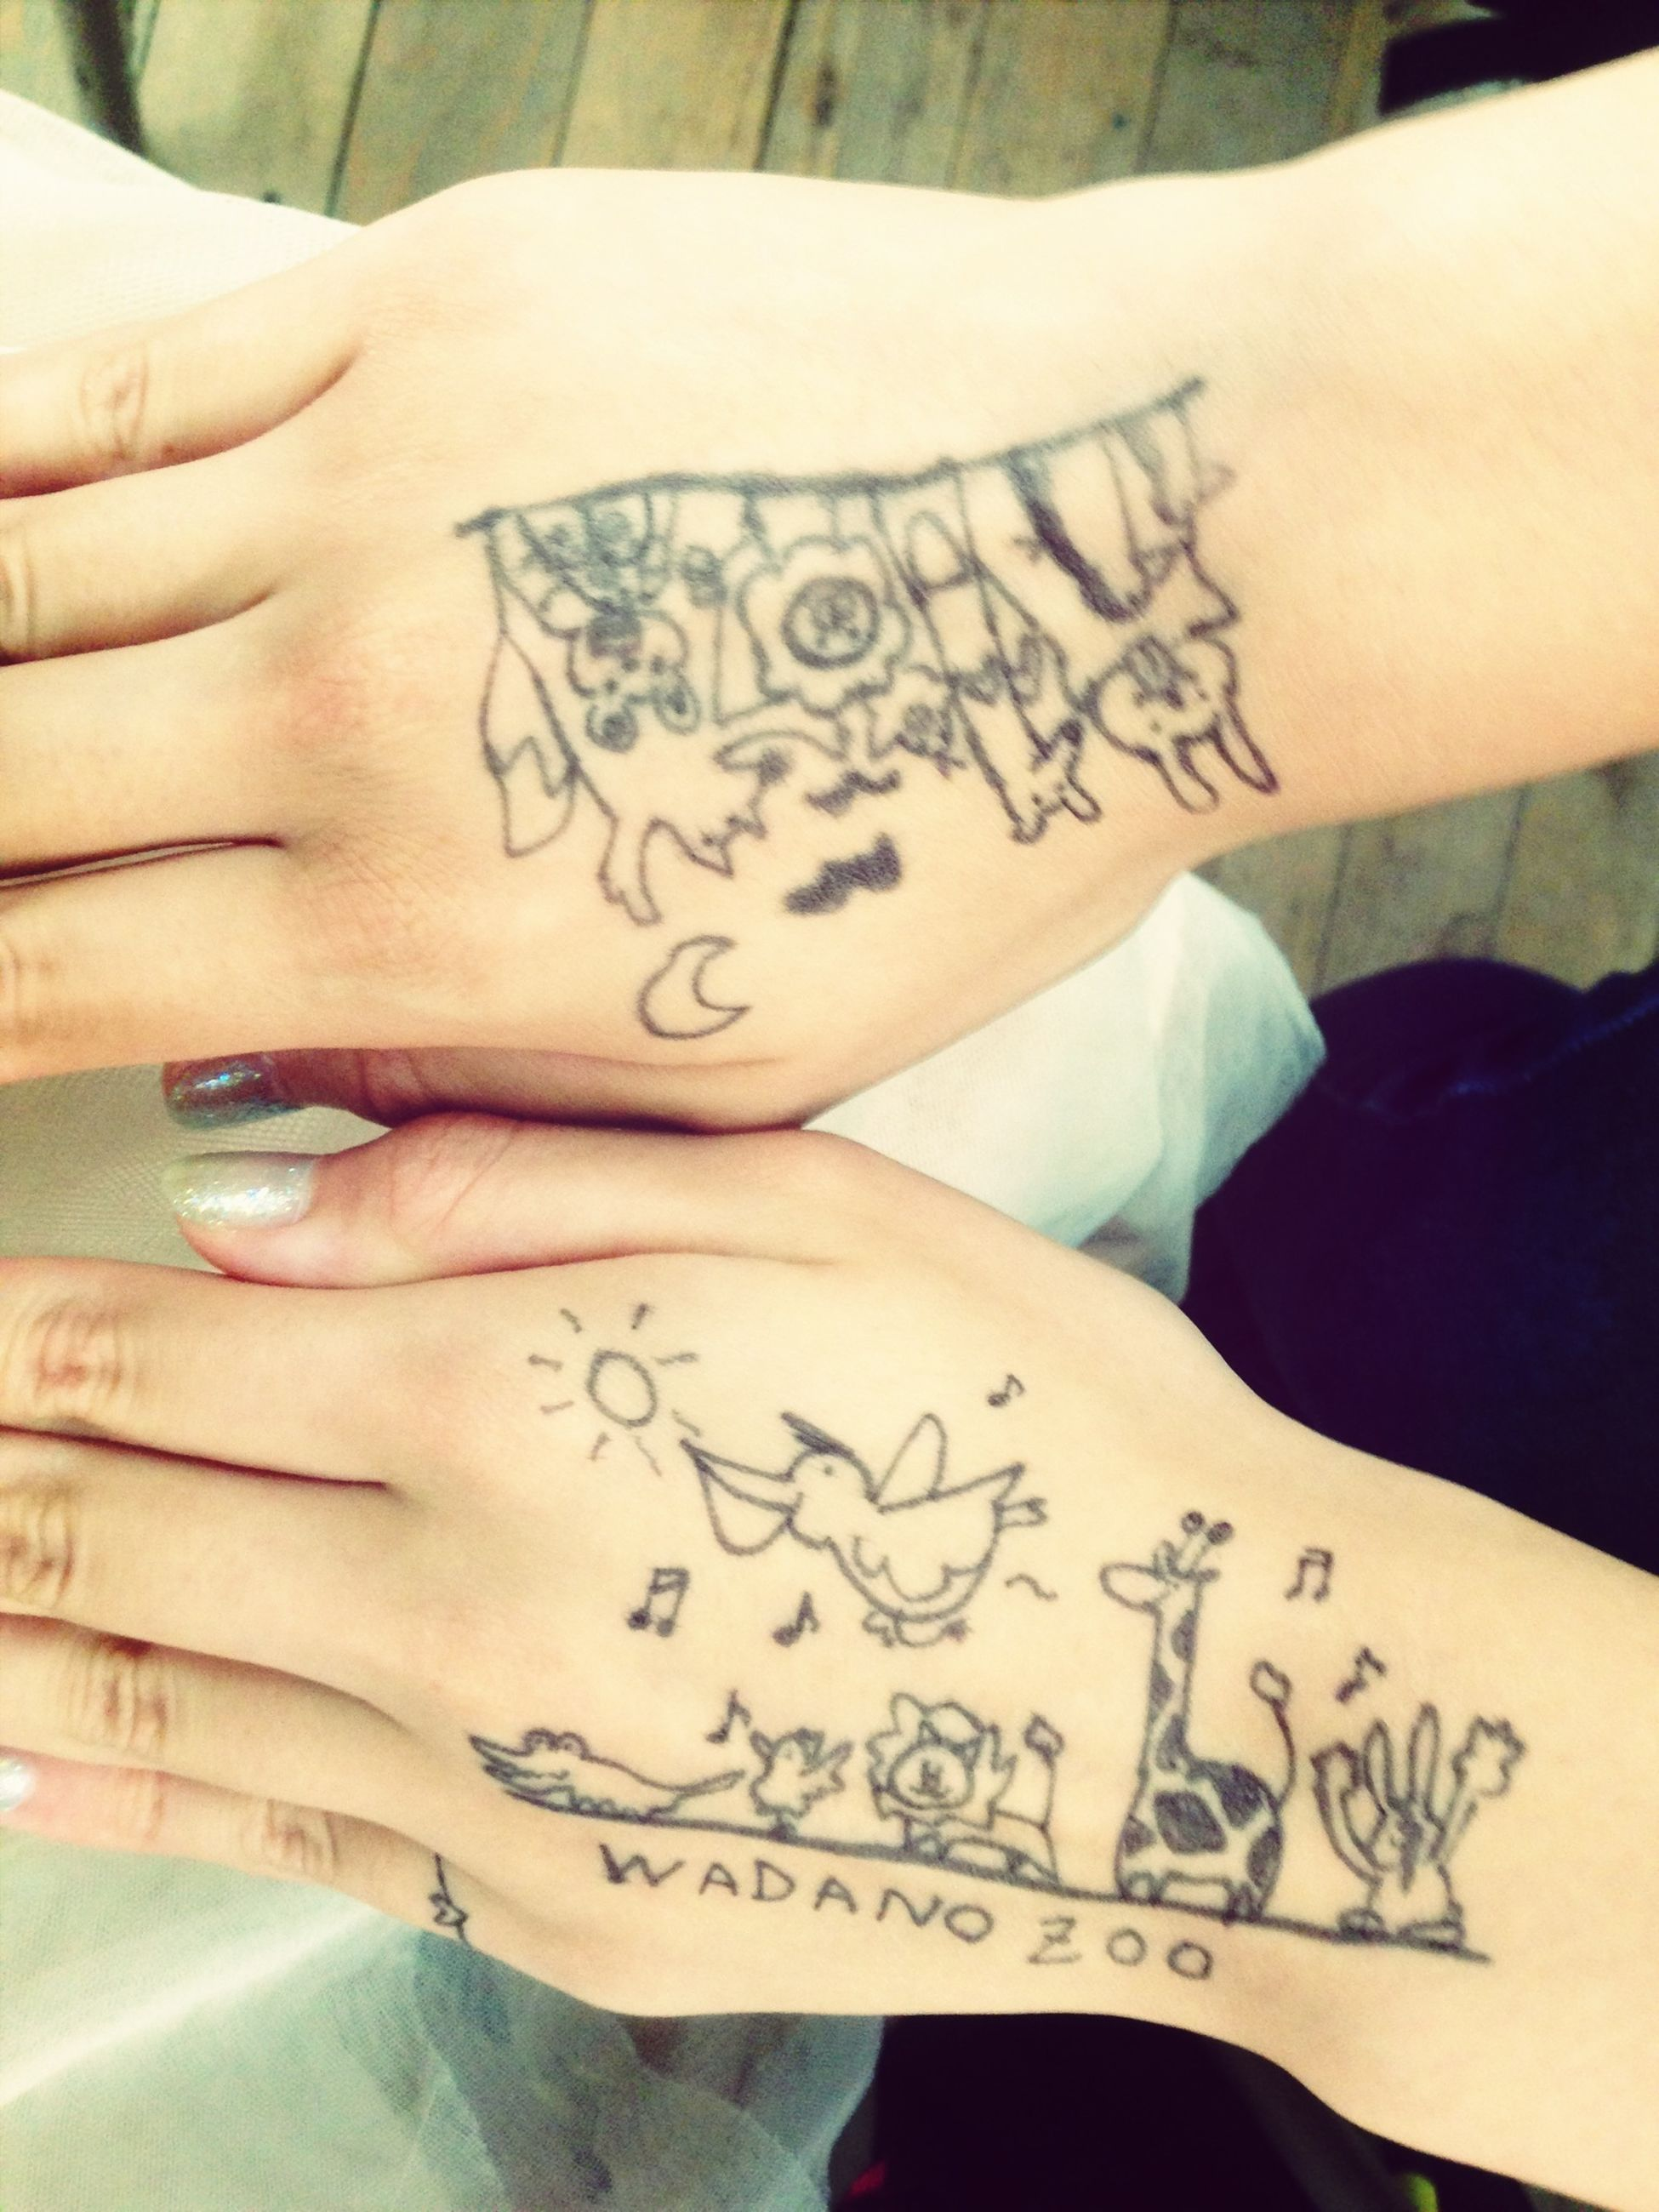 person, indoors, text, western script, communication, lifestyles, part of, creativity, close-up, human finger, art, paper, leisure activity, midsection, cropped, tattoo